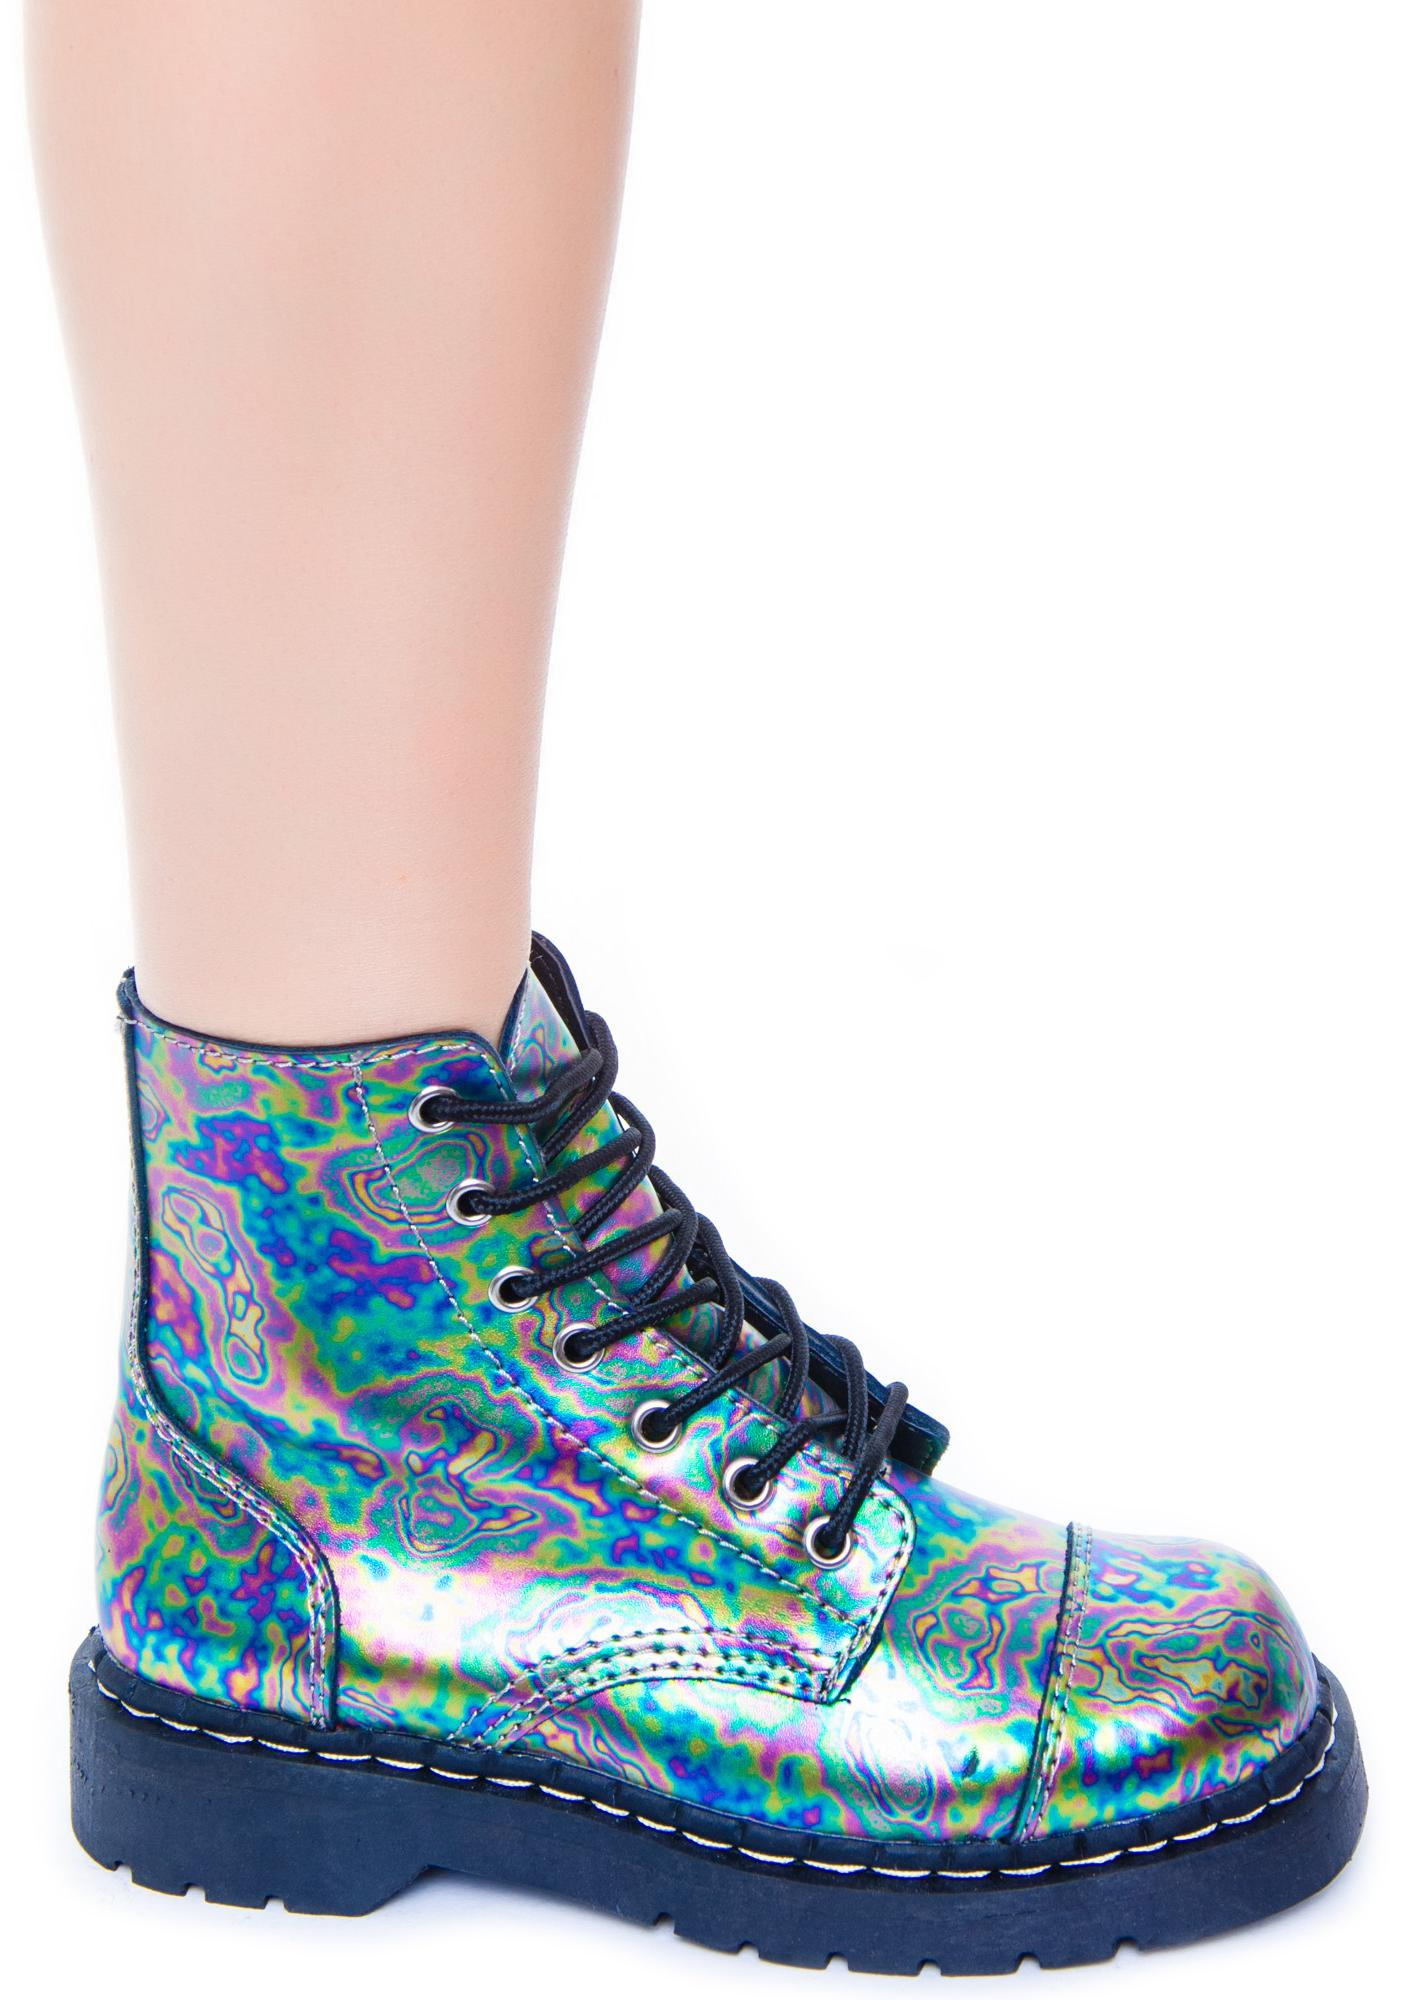 T.U.K. Oil Slick Leather 7 Eye Boot